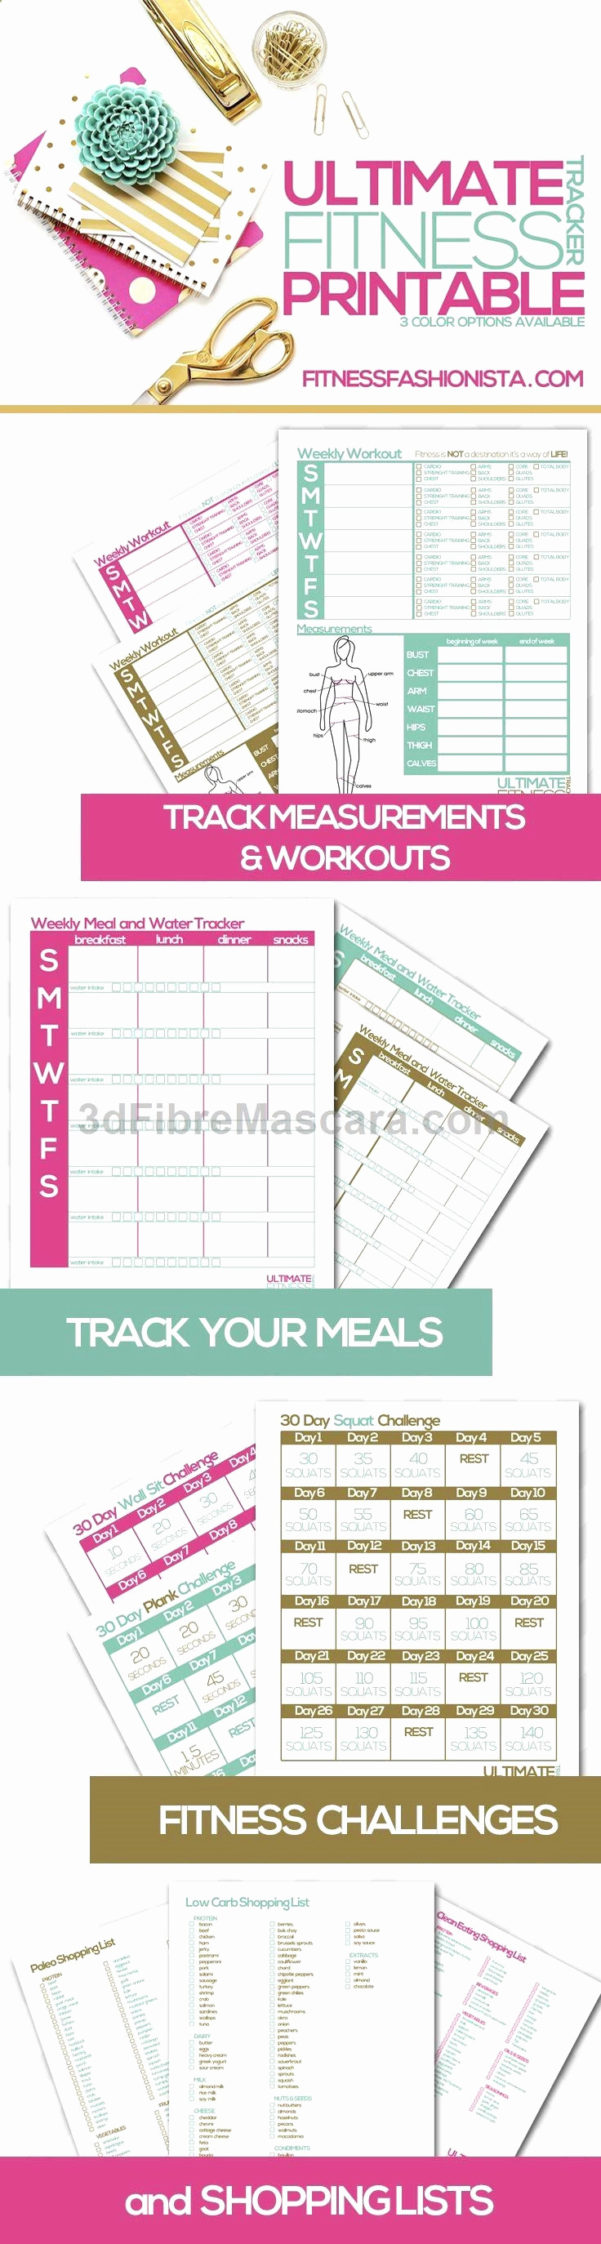 12 Week Year Spreadsheet With 12 Week Year Excel Template – Spreadsheet Collections